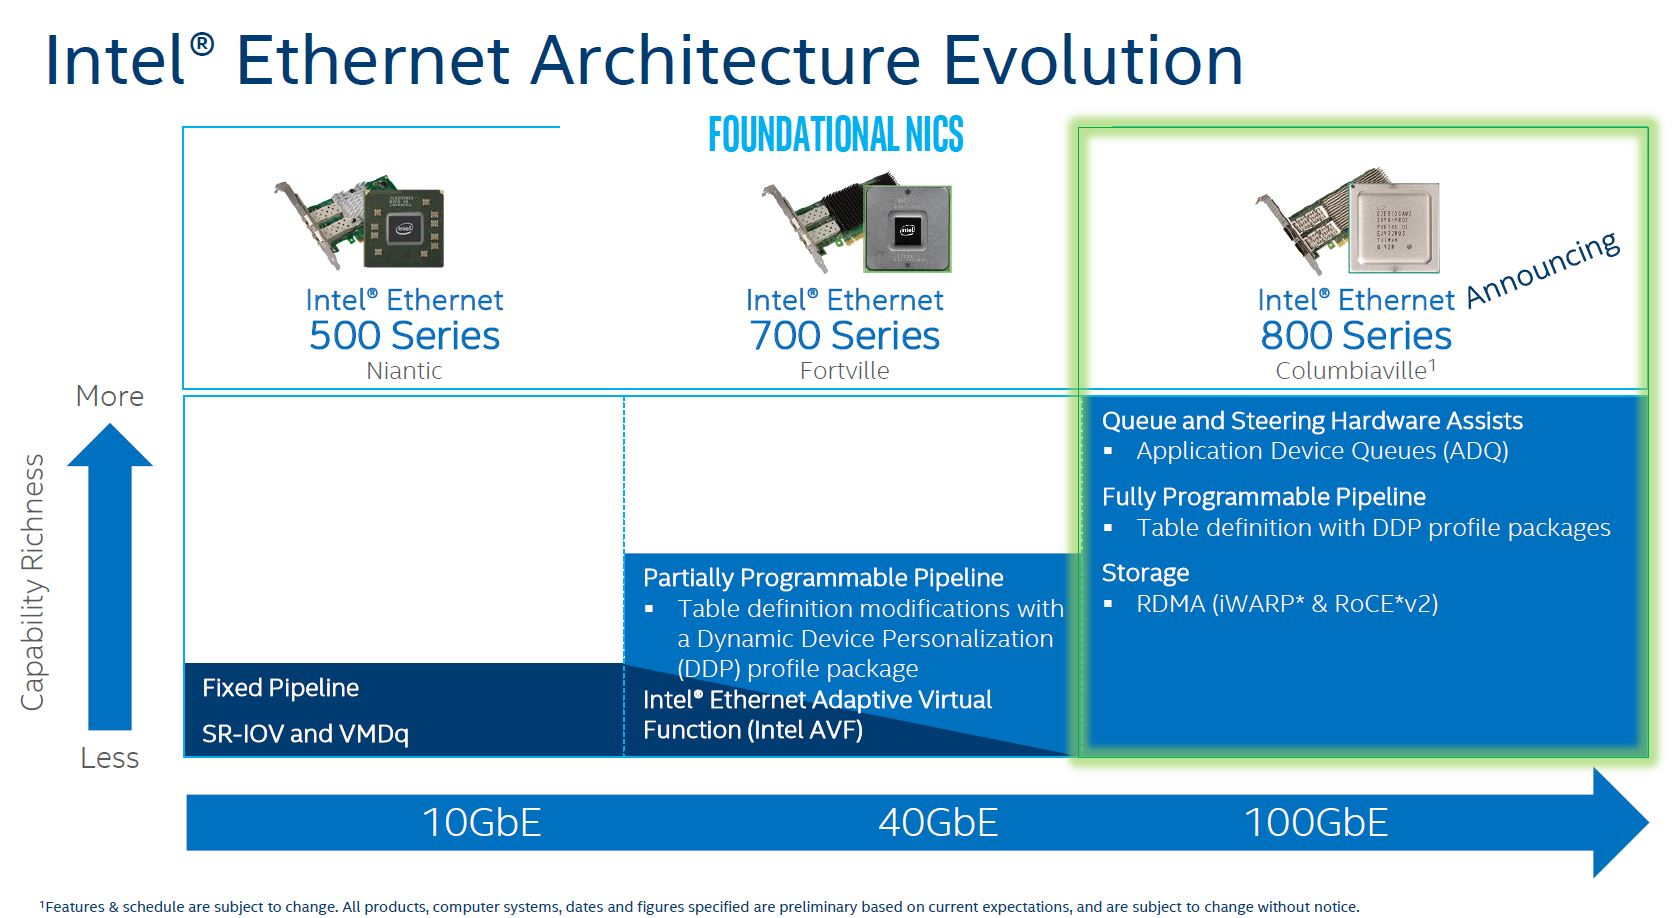 Intel揭秘首款100GbE網路卡:支援PCIe 4.0 - XFastest - Intel-Ethernet-10-to-100GbE-Evol.png